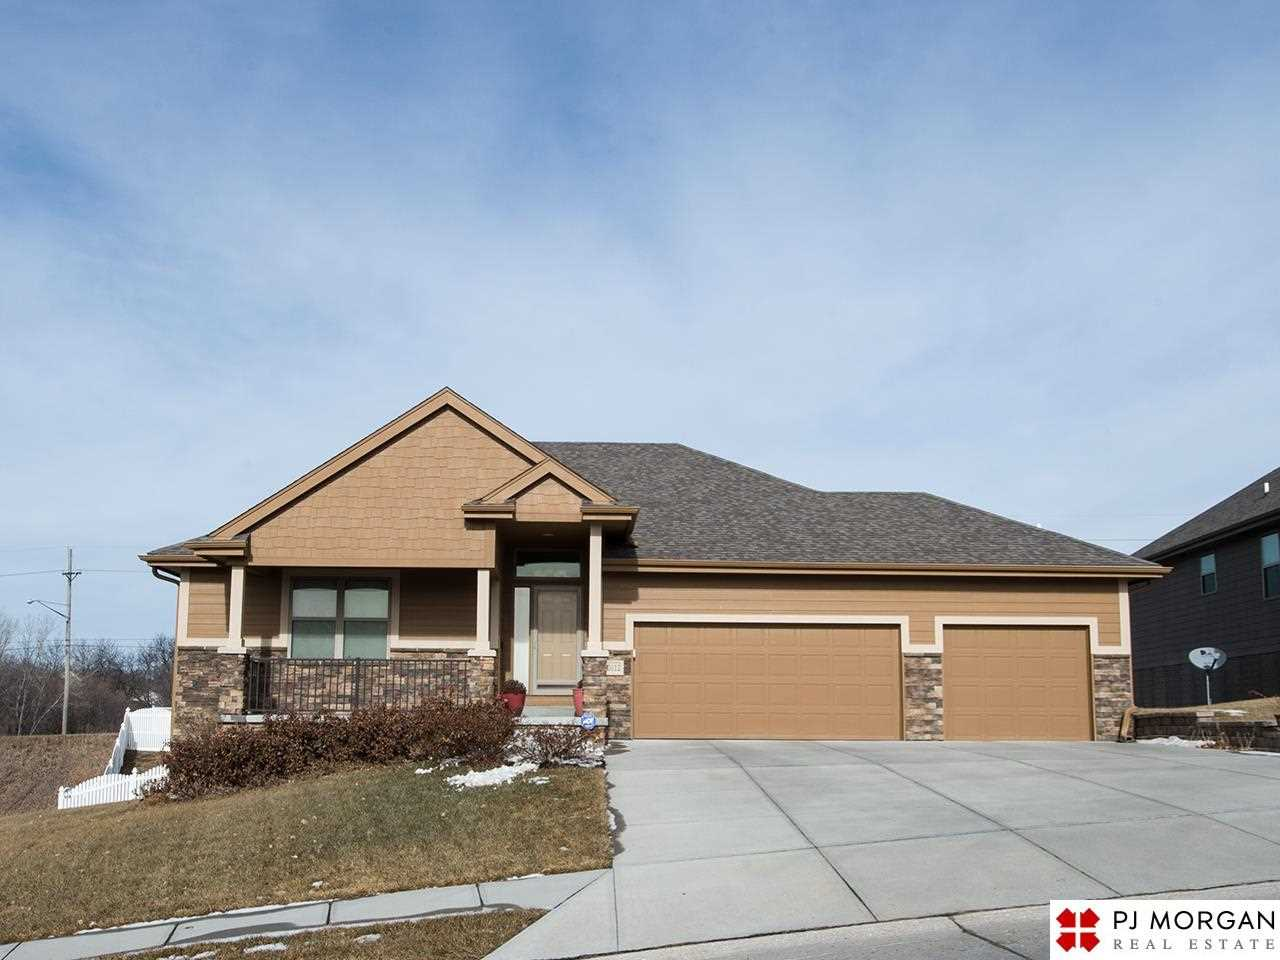 10112 Virginia La Vista, NE 68128 | MLS 21802980 Photo 1